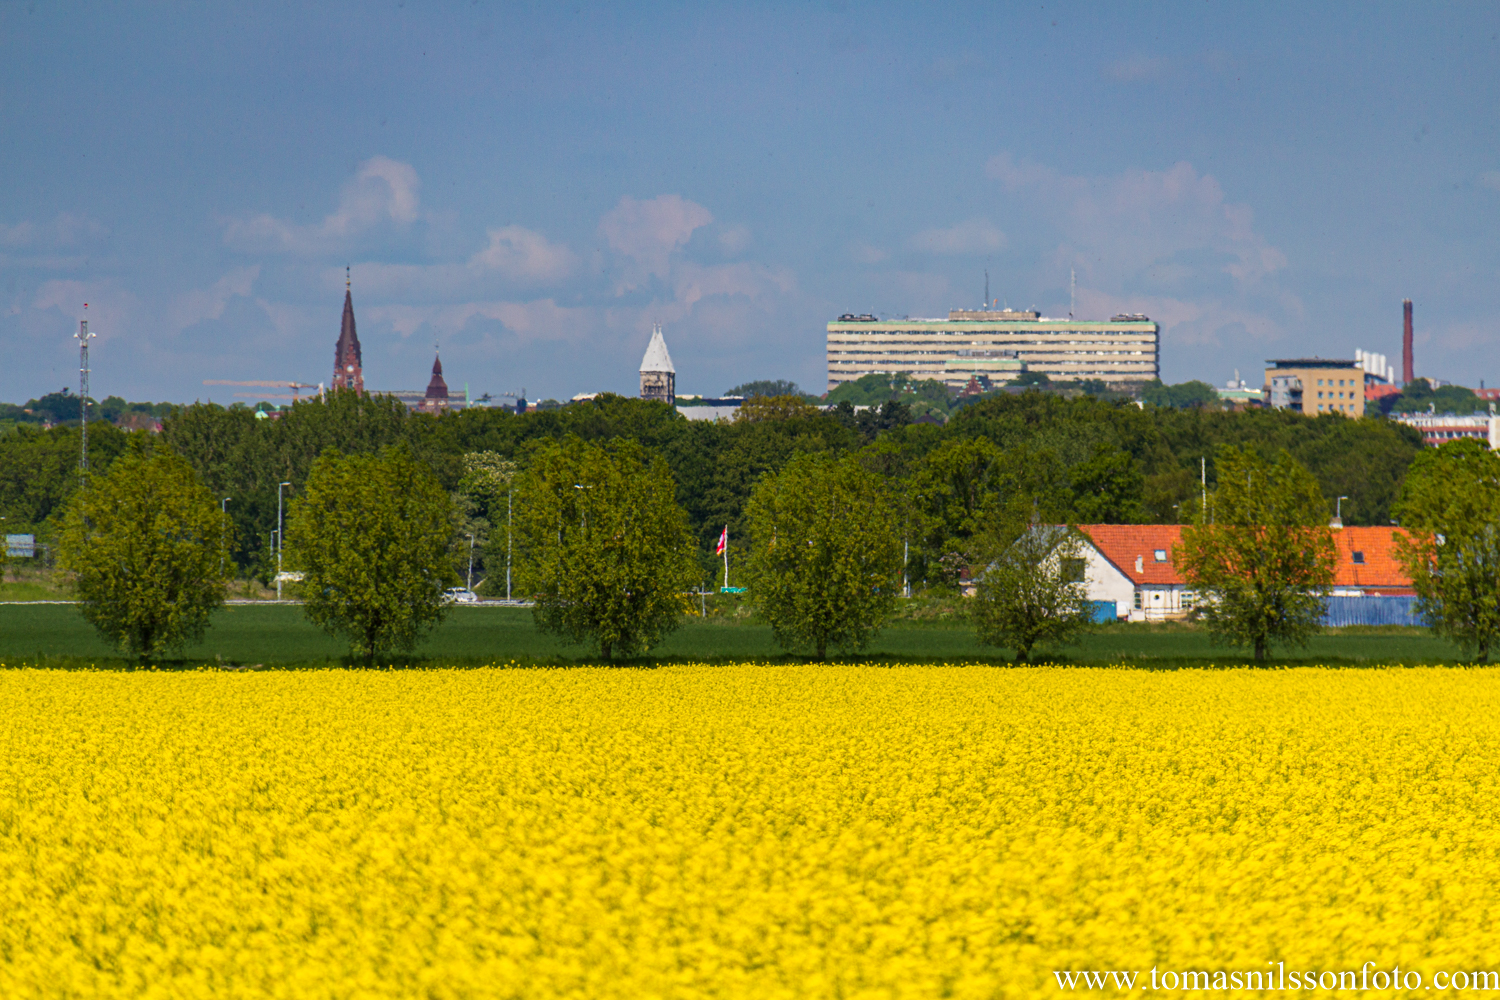 The city of Lund in the background